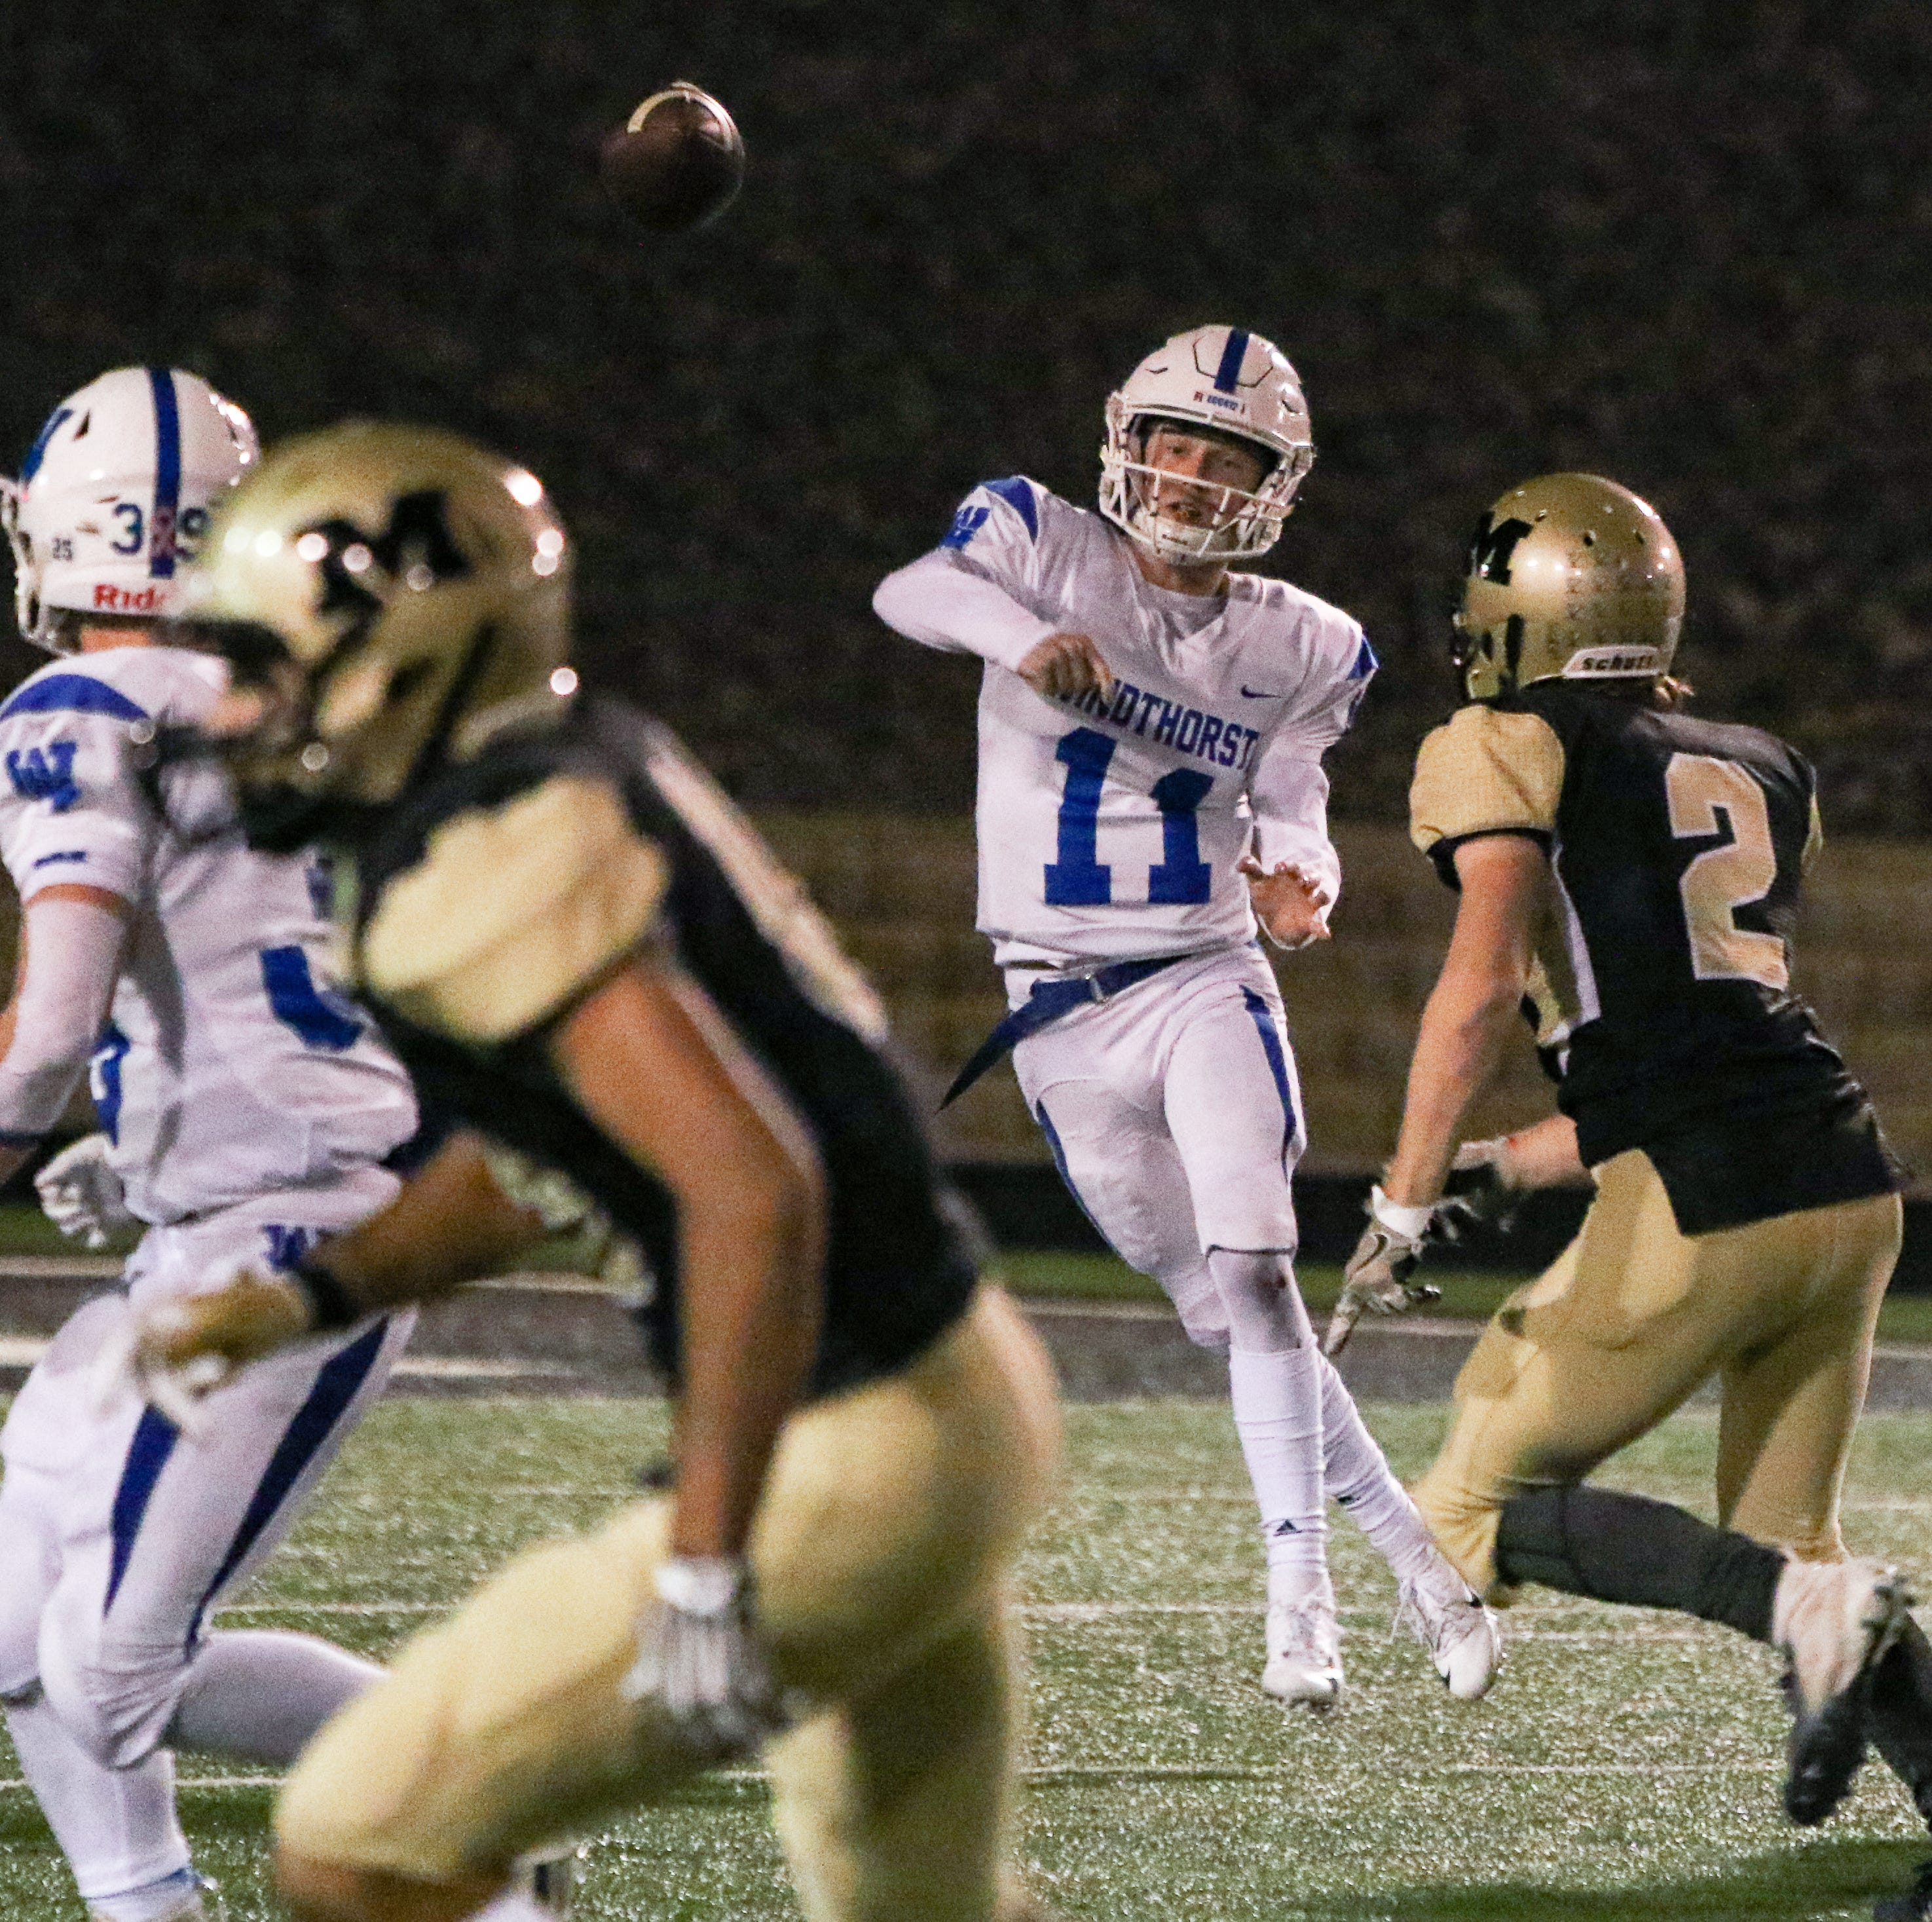 Windthorst regroups to dismantle Memphis in second half for bi-district victory